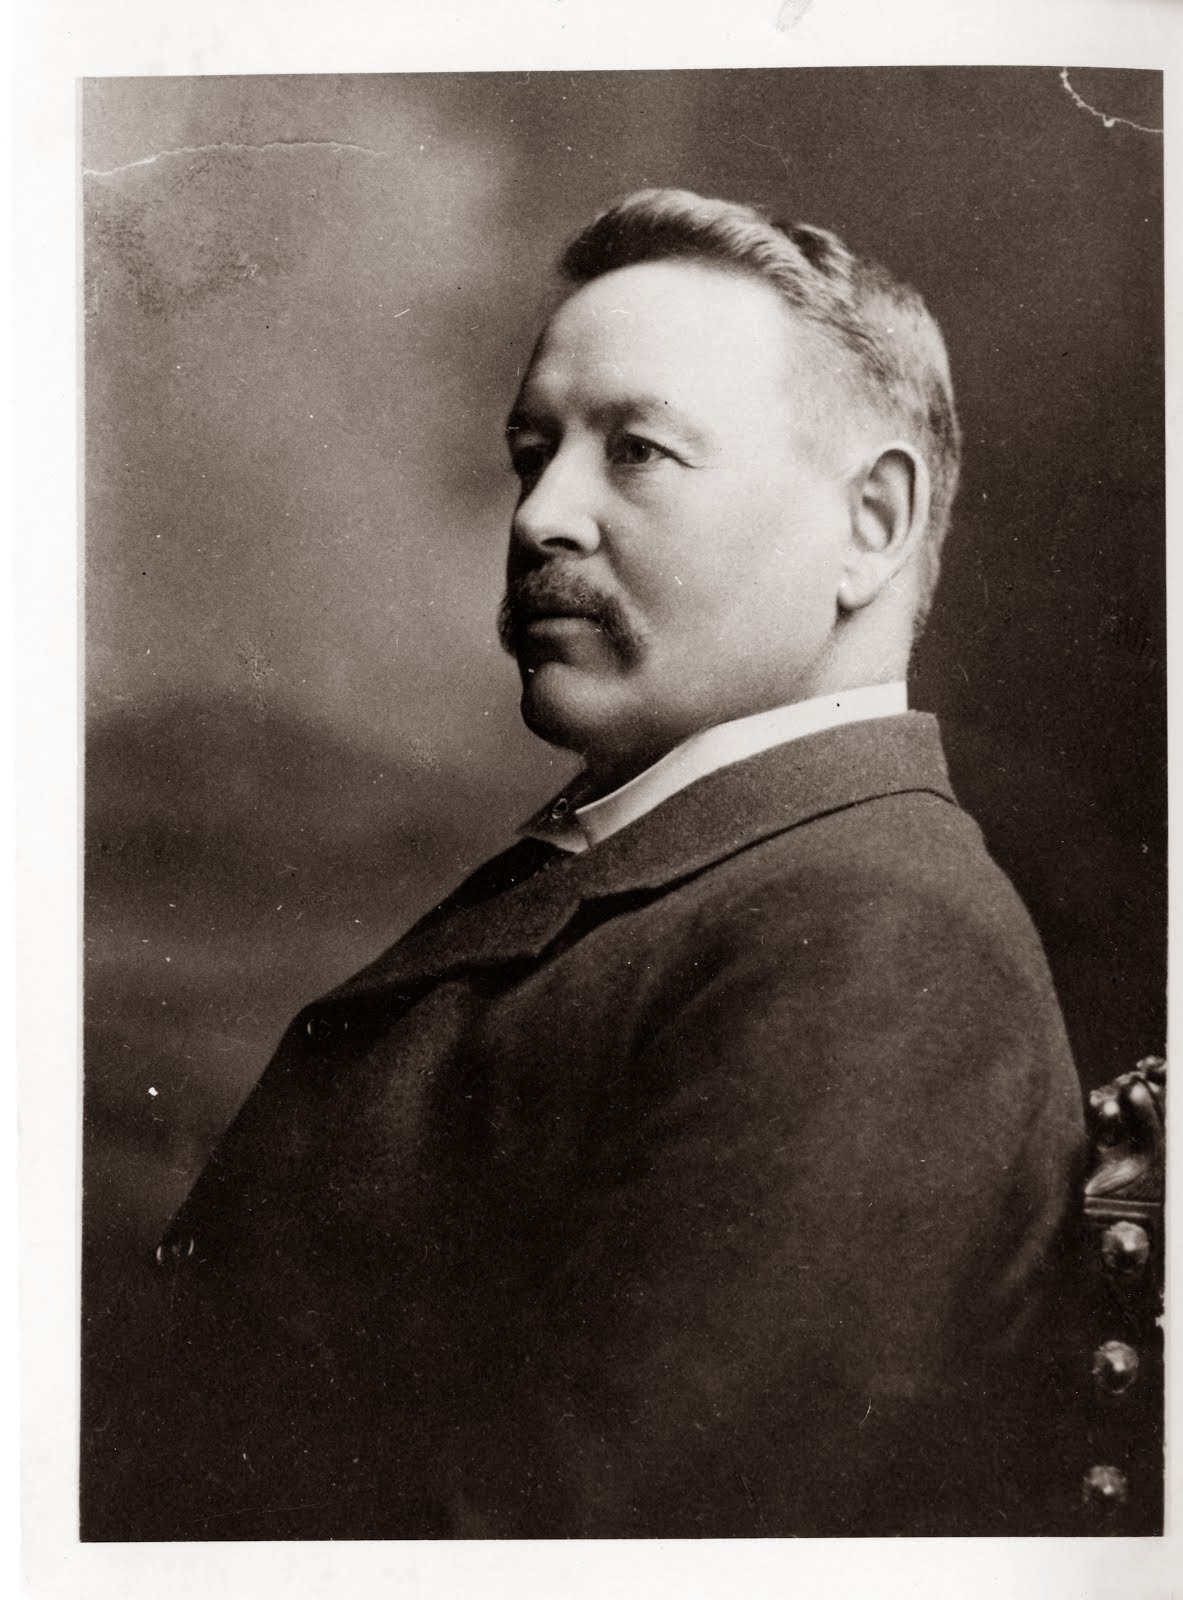 George F. Beardsley